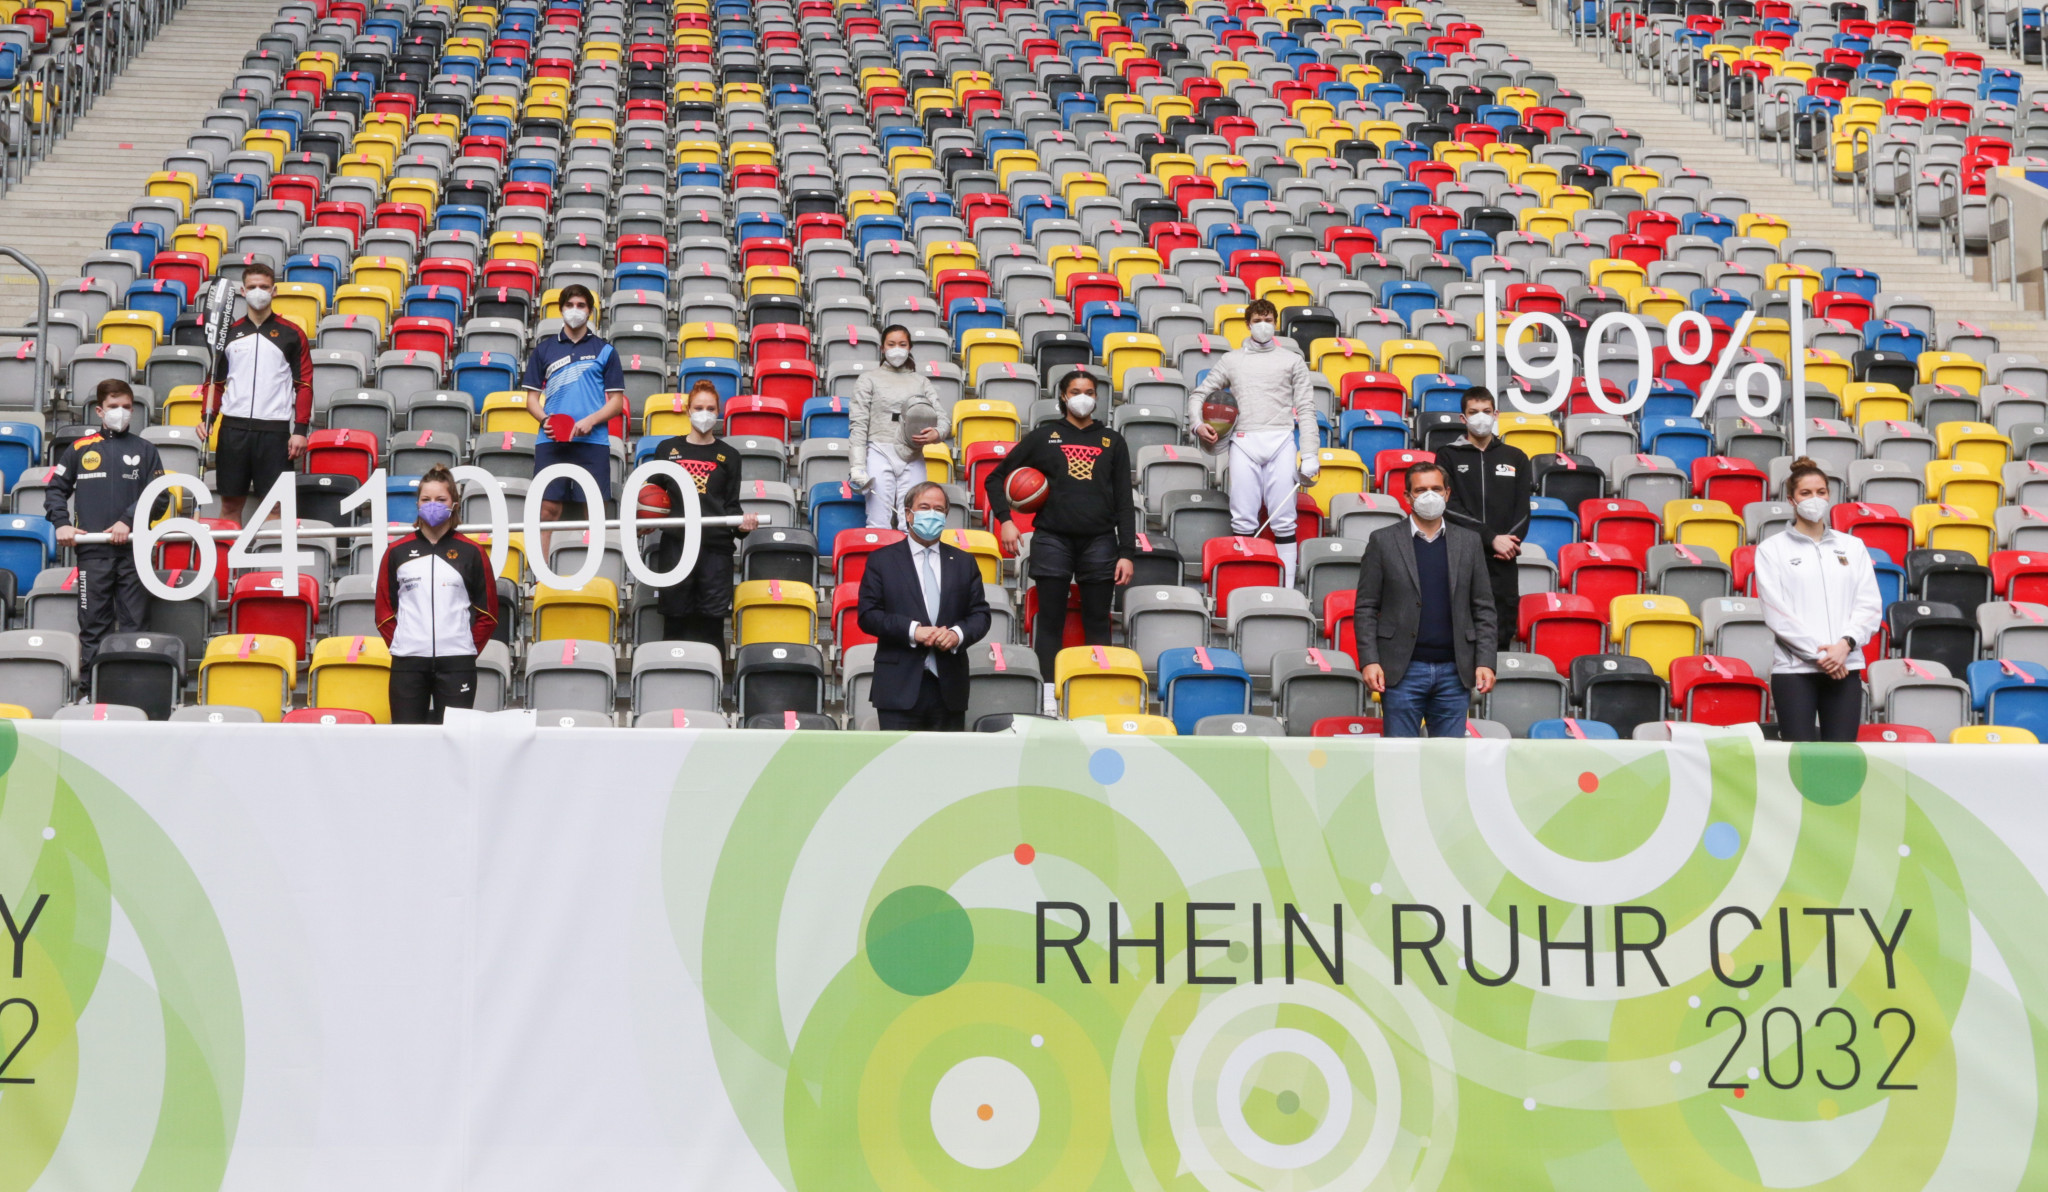 Rhein Ruhr was one of a host of other candidates that presented its case to host the 2032 Olympics ©Getty Images